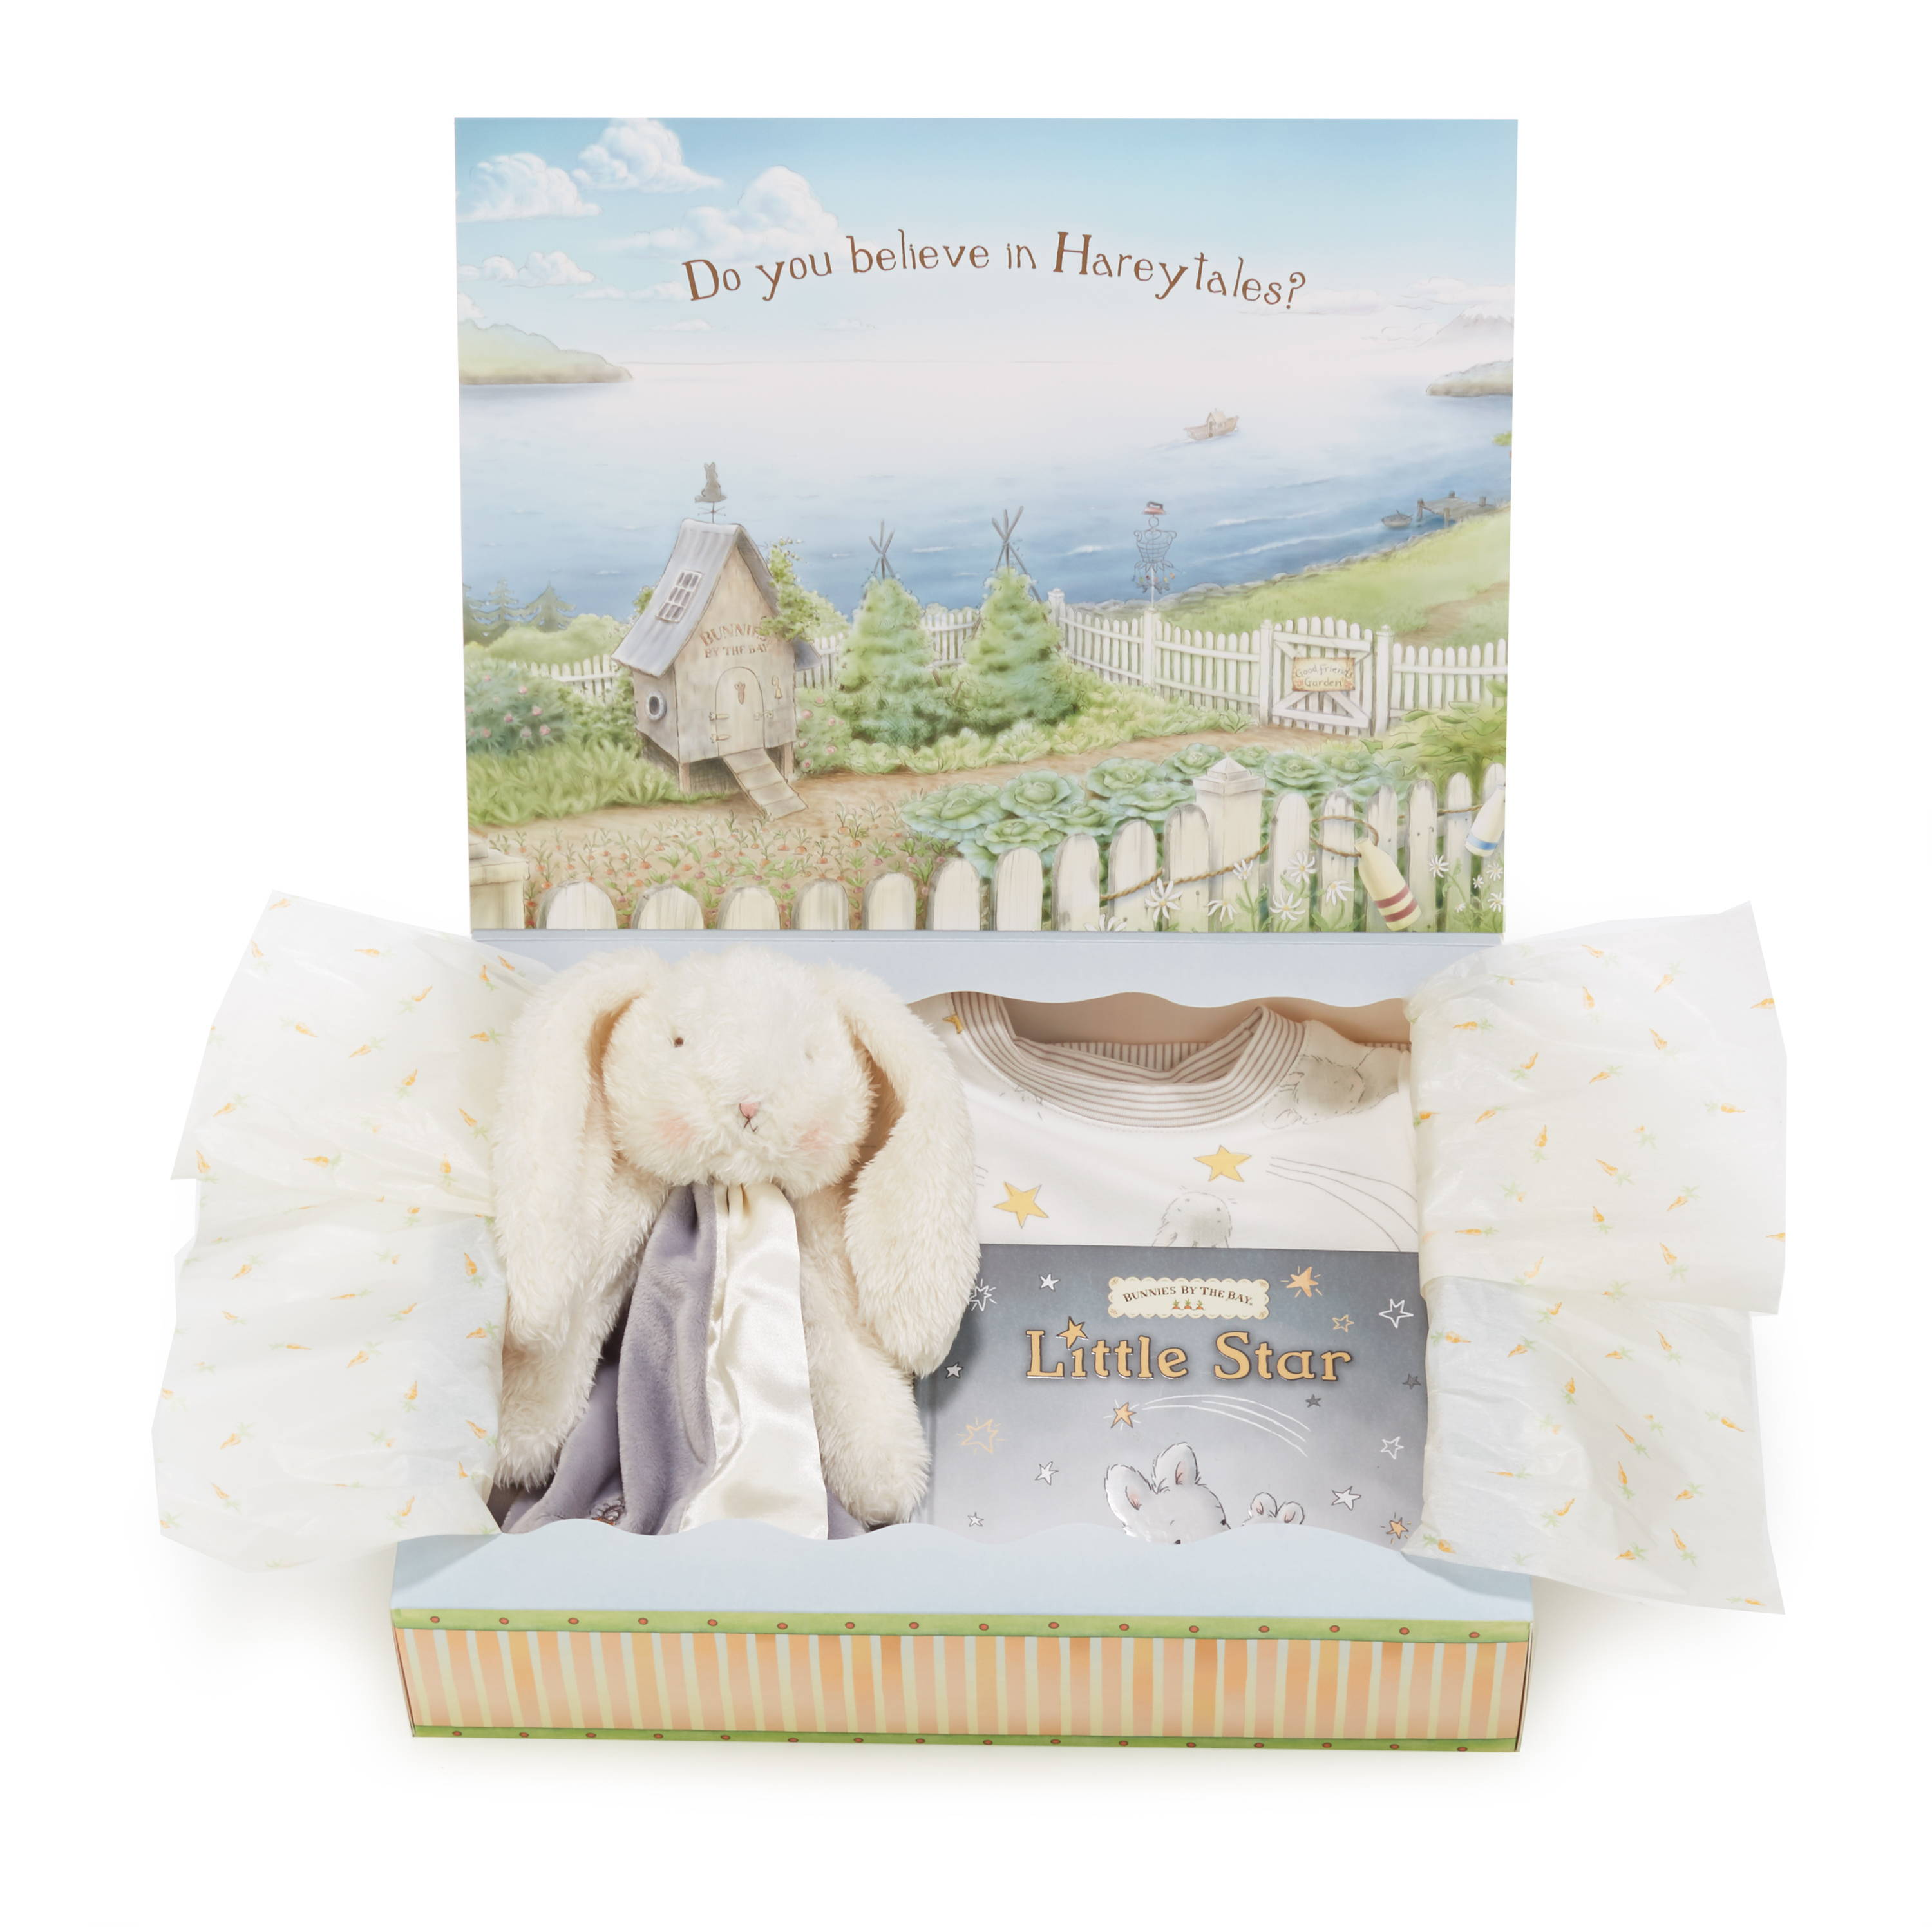 A cute grey bunny - perfect as a baby shower gift!